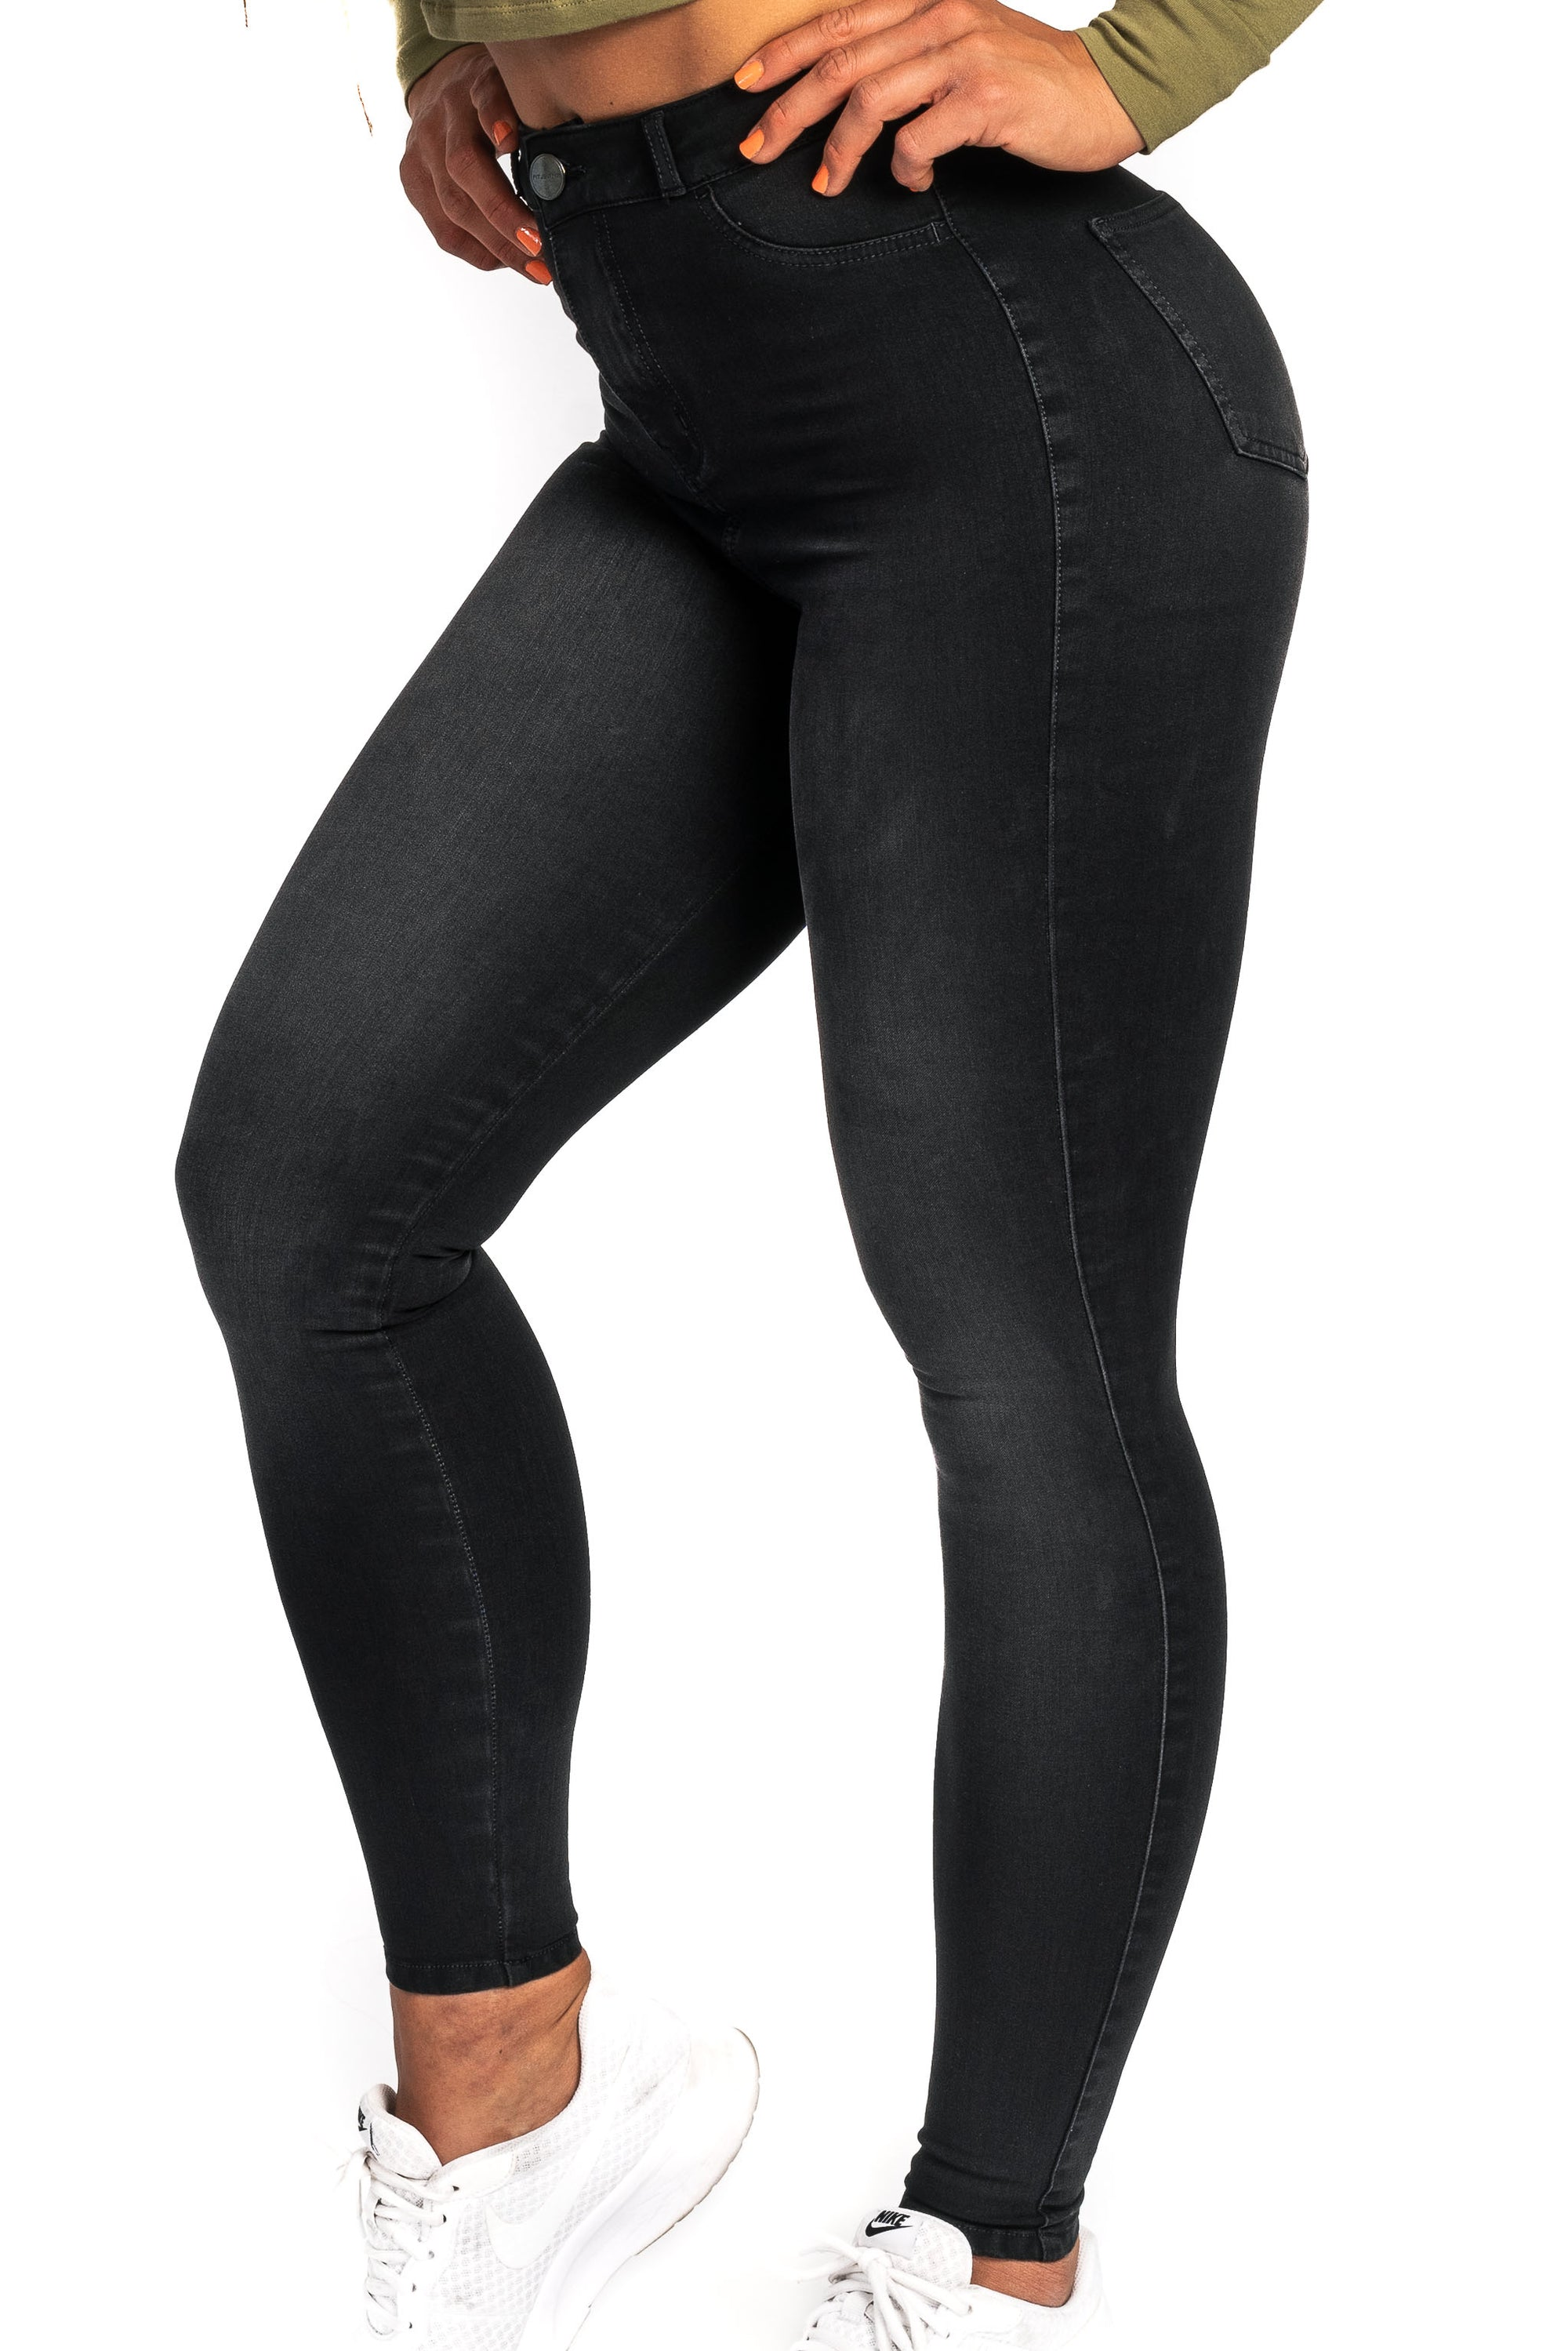 Womens 360 High Waisted Fitjeans - Shaded Black